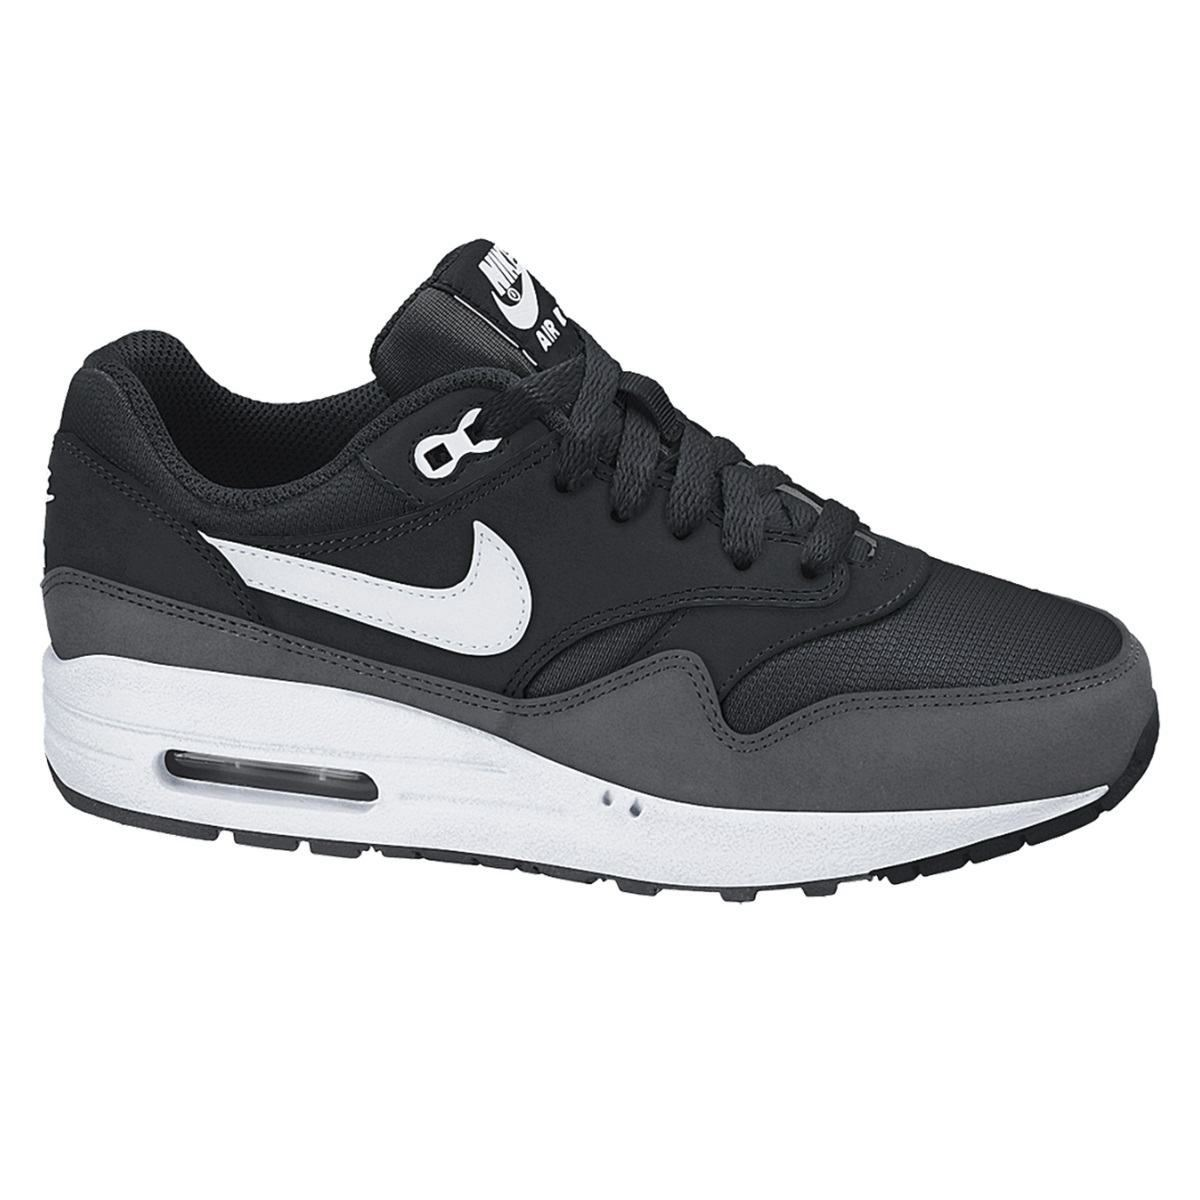 nike air max 1 gs schuhe turnschuhe sneaker damen kinder. Black Bedroom Furniture Sets. Home Design Ideas